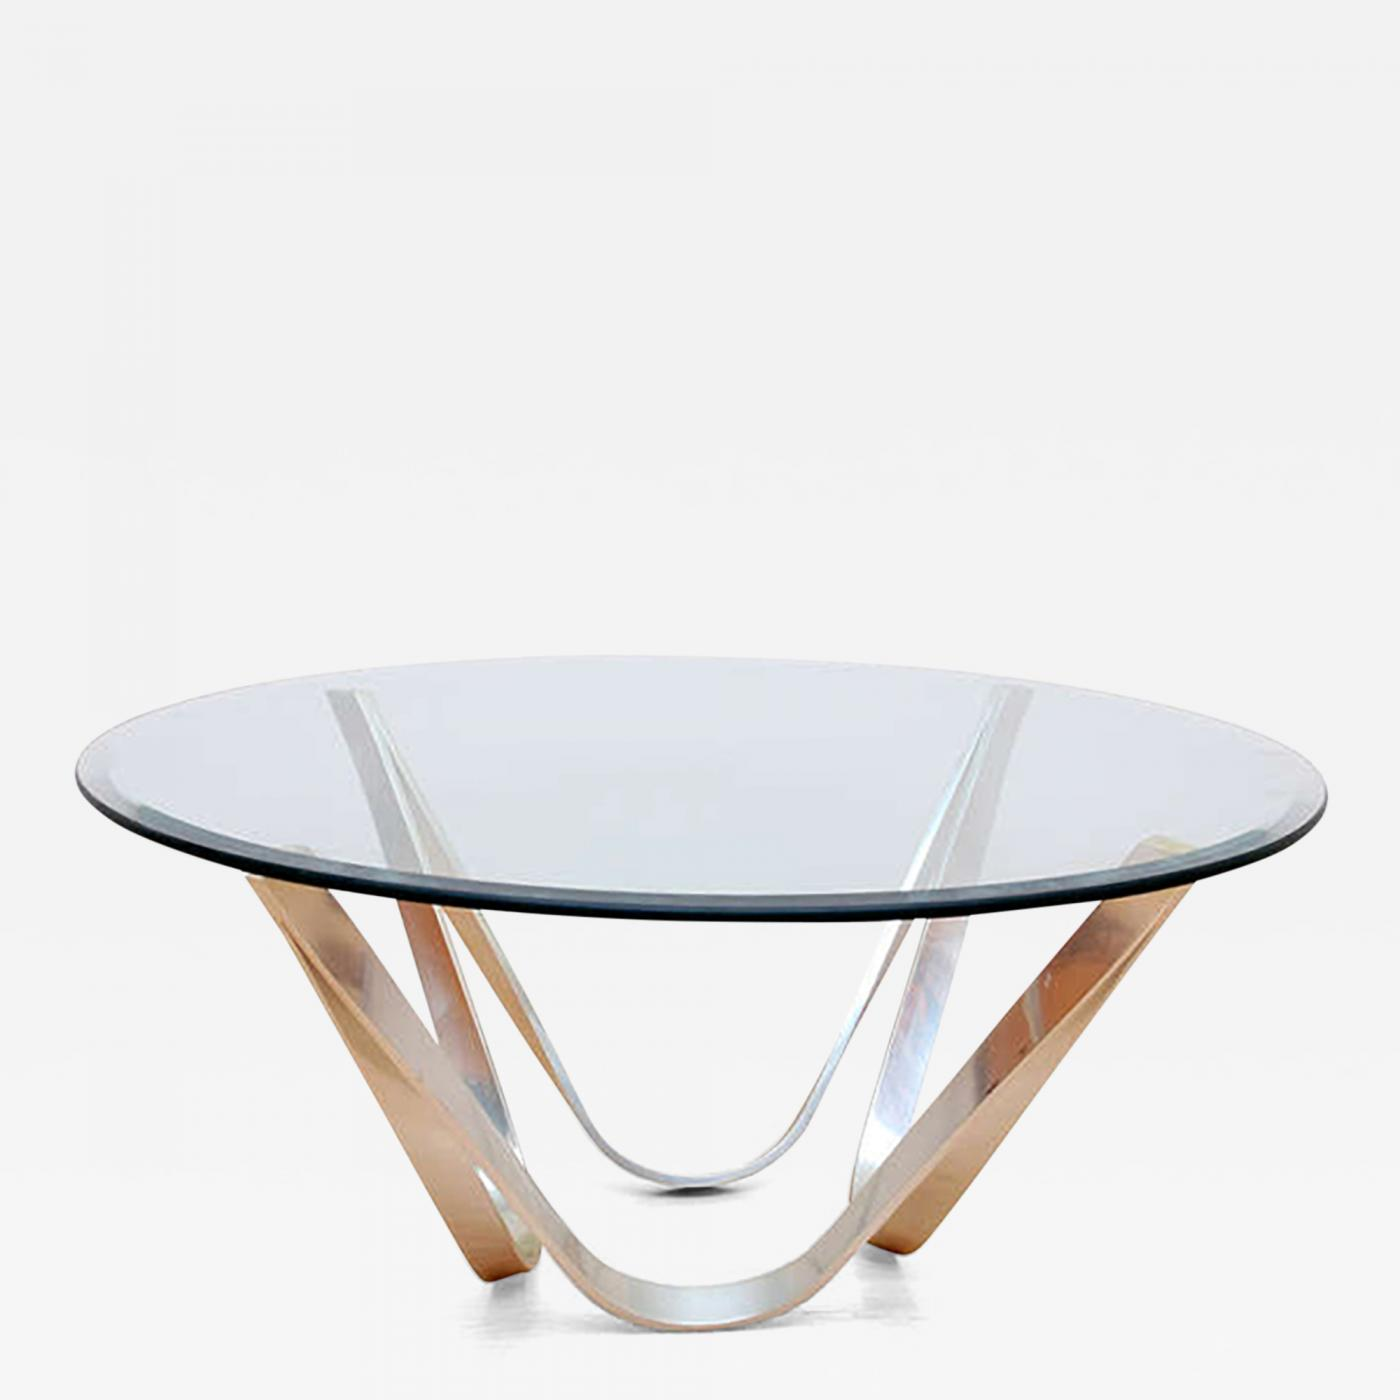 Roger sprunger style coffee table mid century modern period listings furniture tables coffee tables geotapseo Gallery